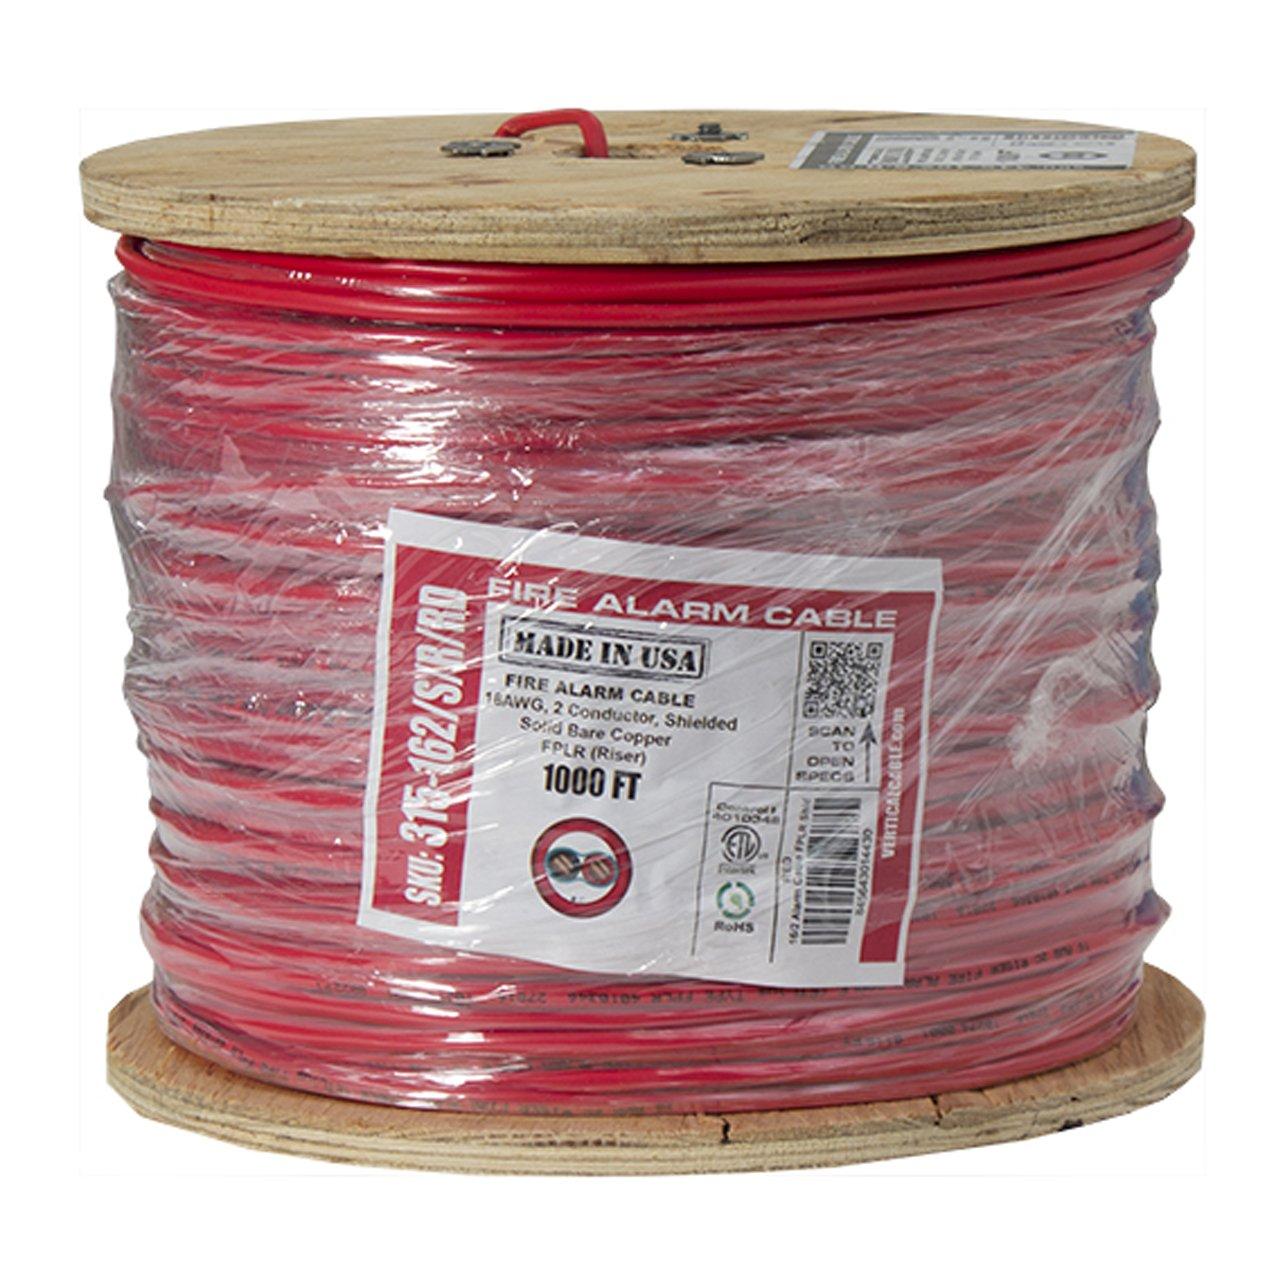 Vertical Cable Fire Alarm Cable, 16 AWG, 2 Conductor, Solid, Shielded, FPLR (Riser), 1000ft Spool, Red - Made in USA by Vertical Cable